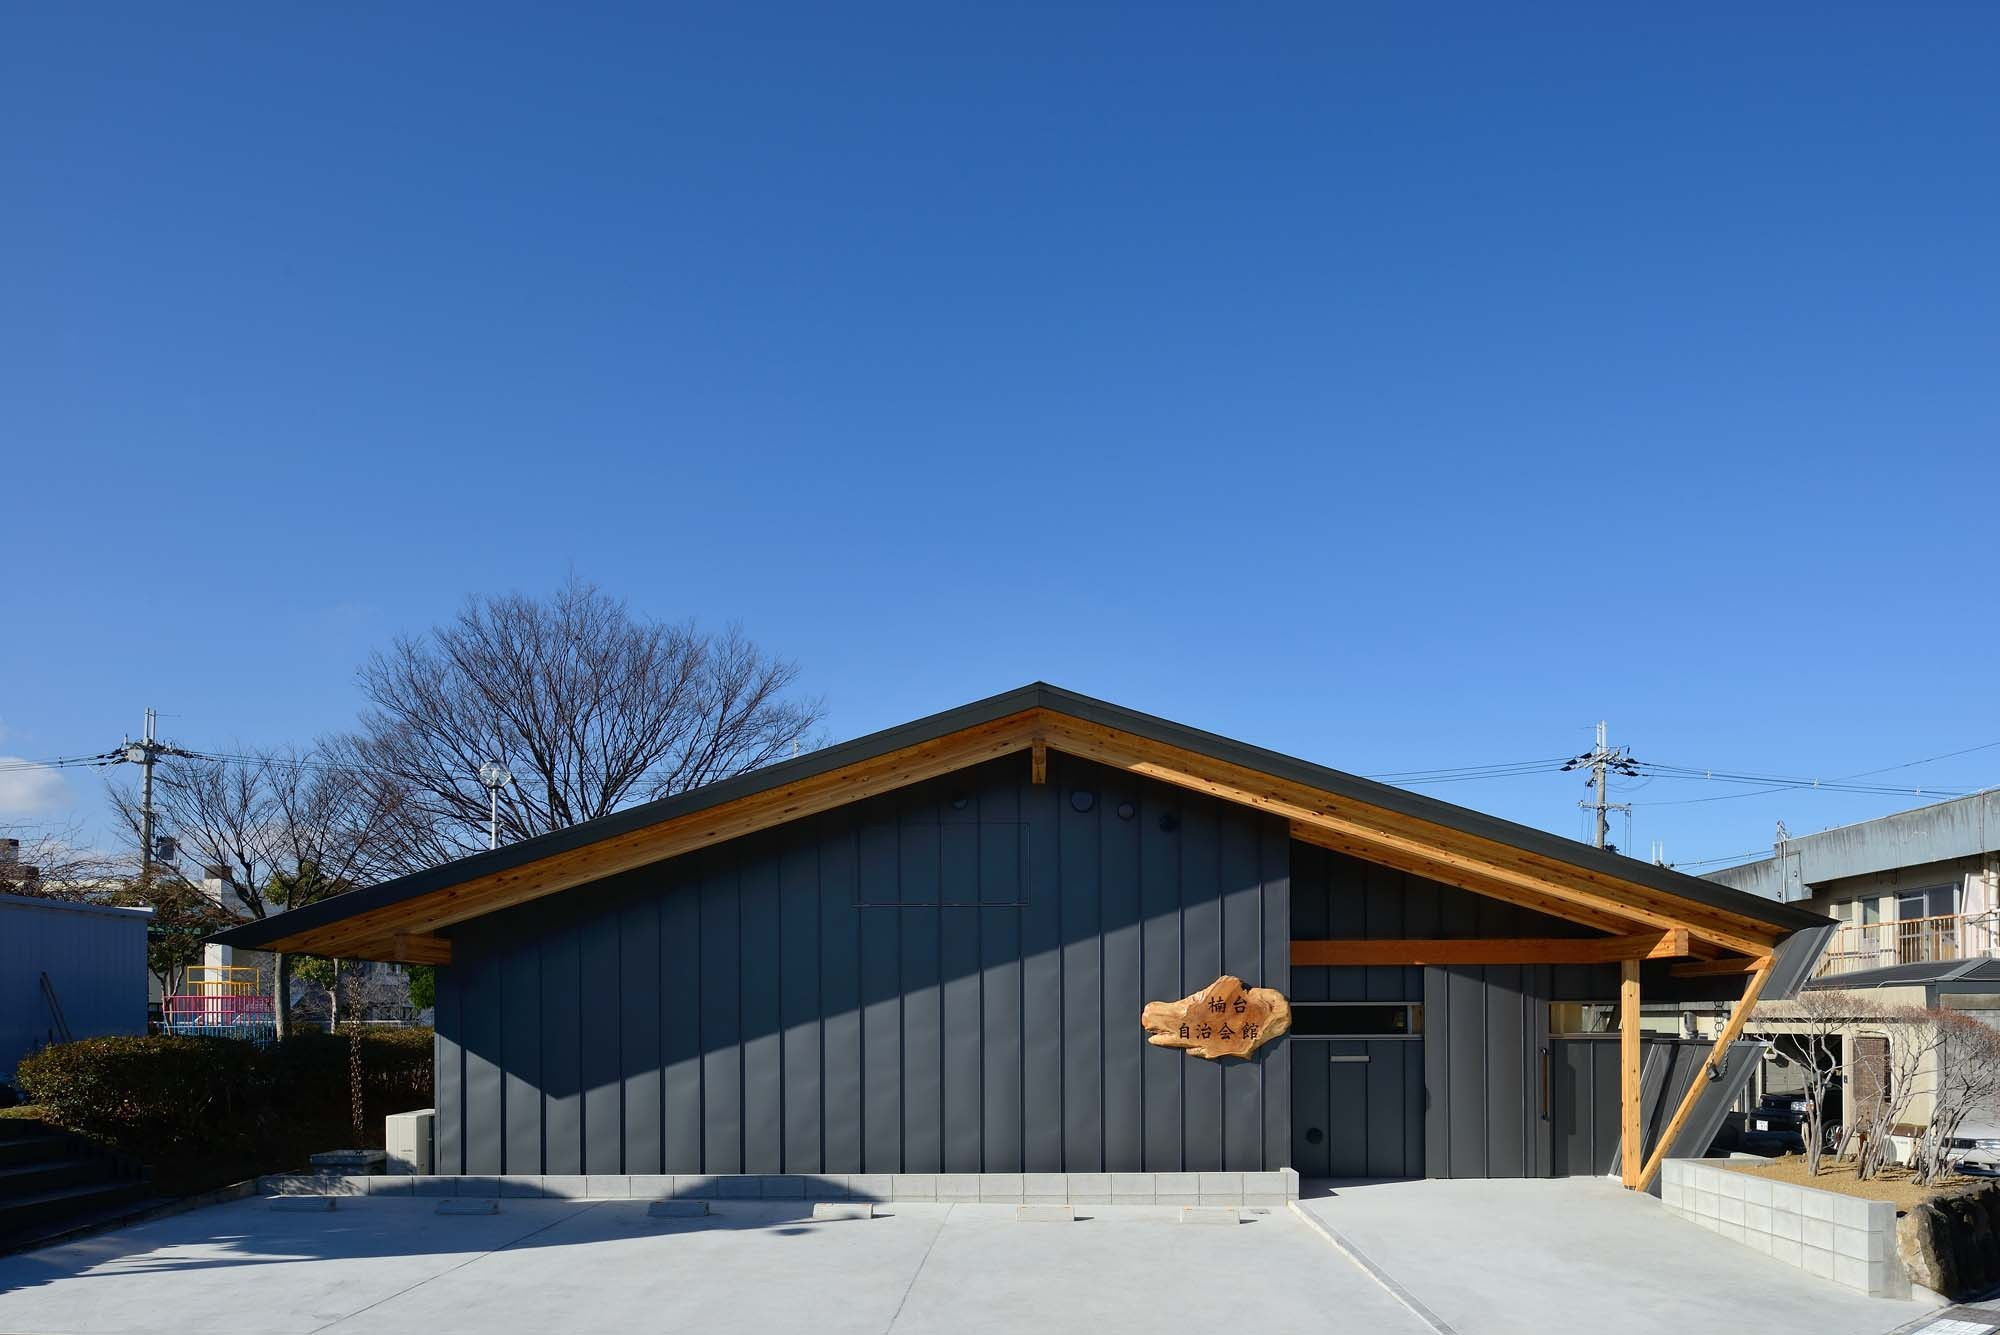 Kusunokidai Assembly Hall / Yamamori Architect & Associates, © Kei Sugino